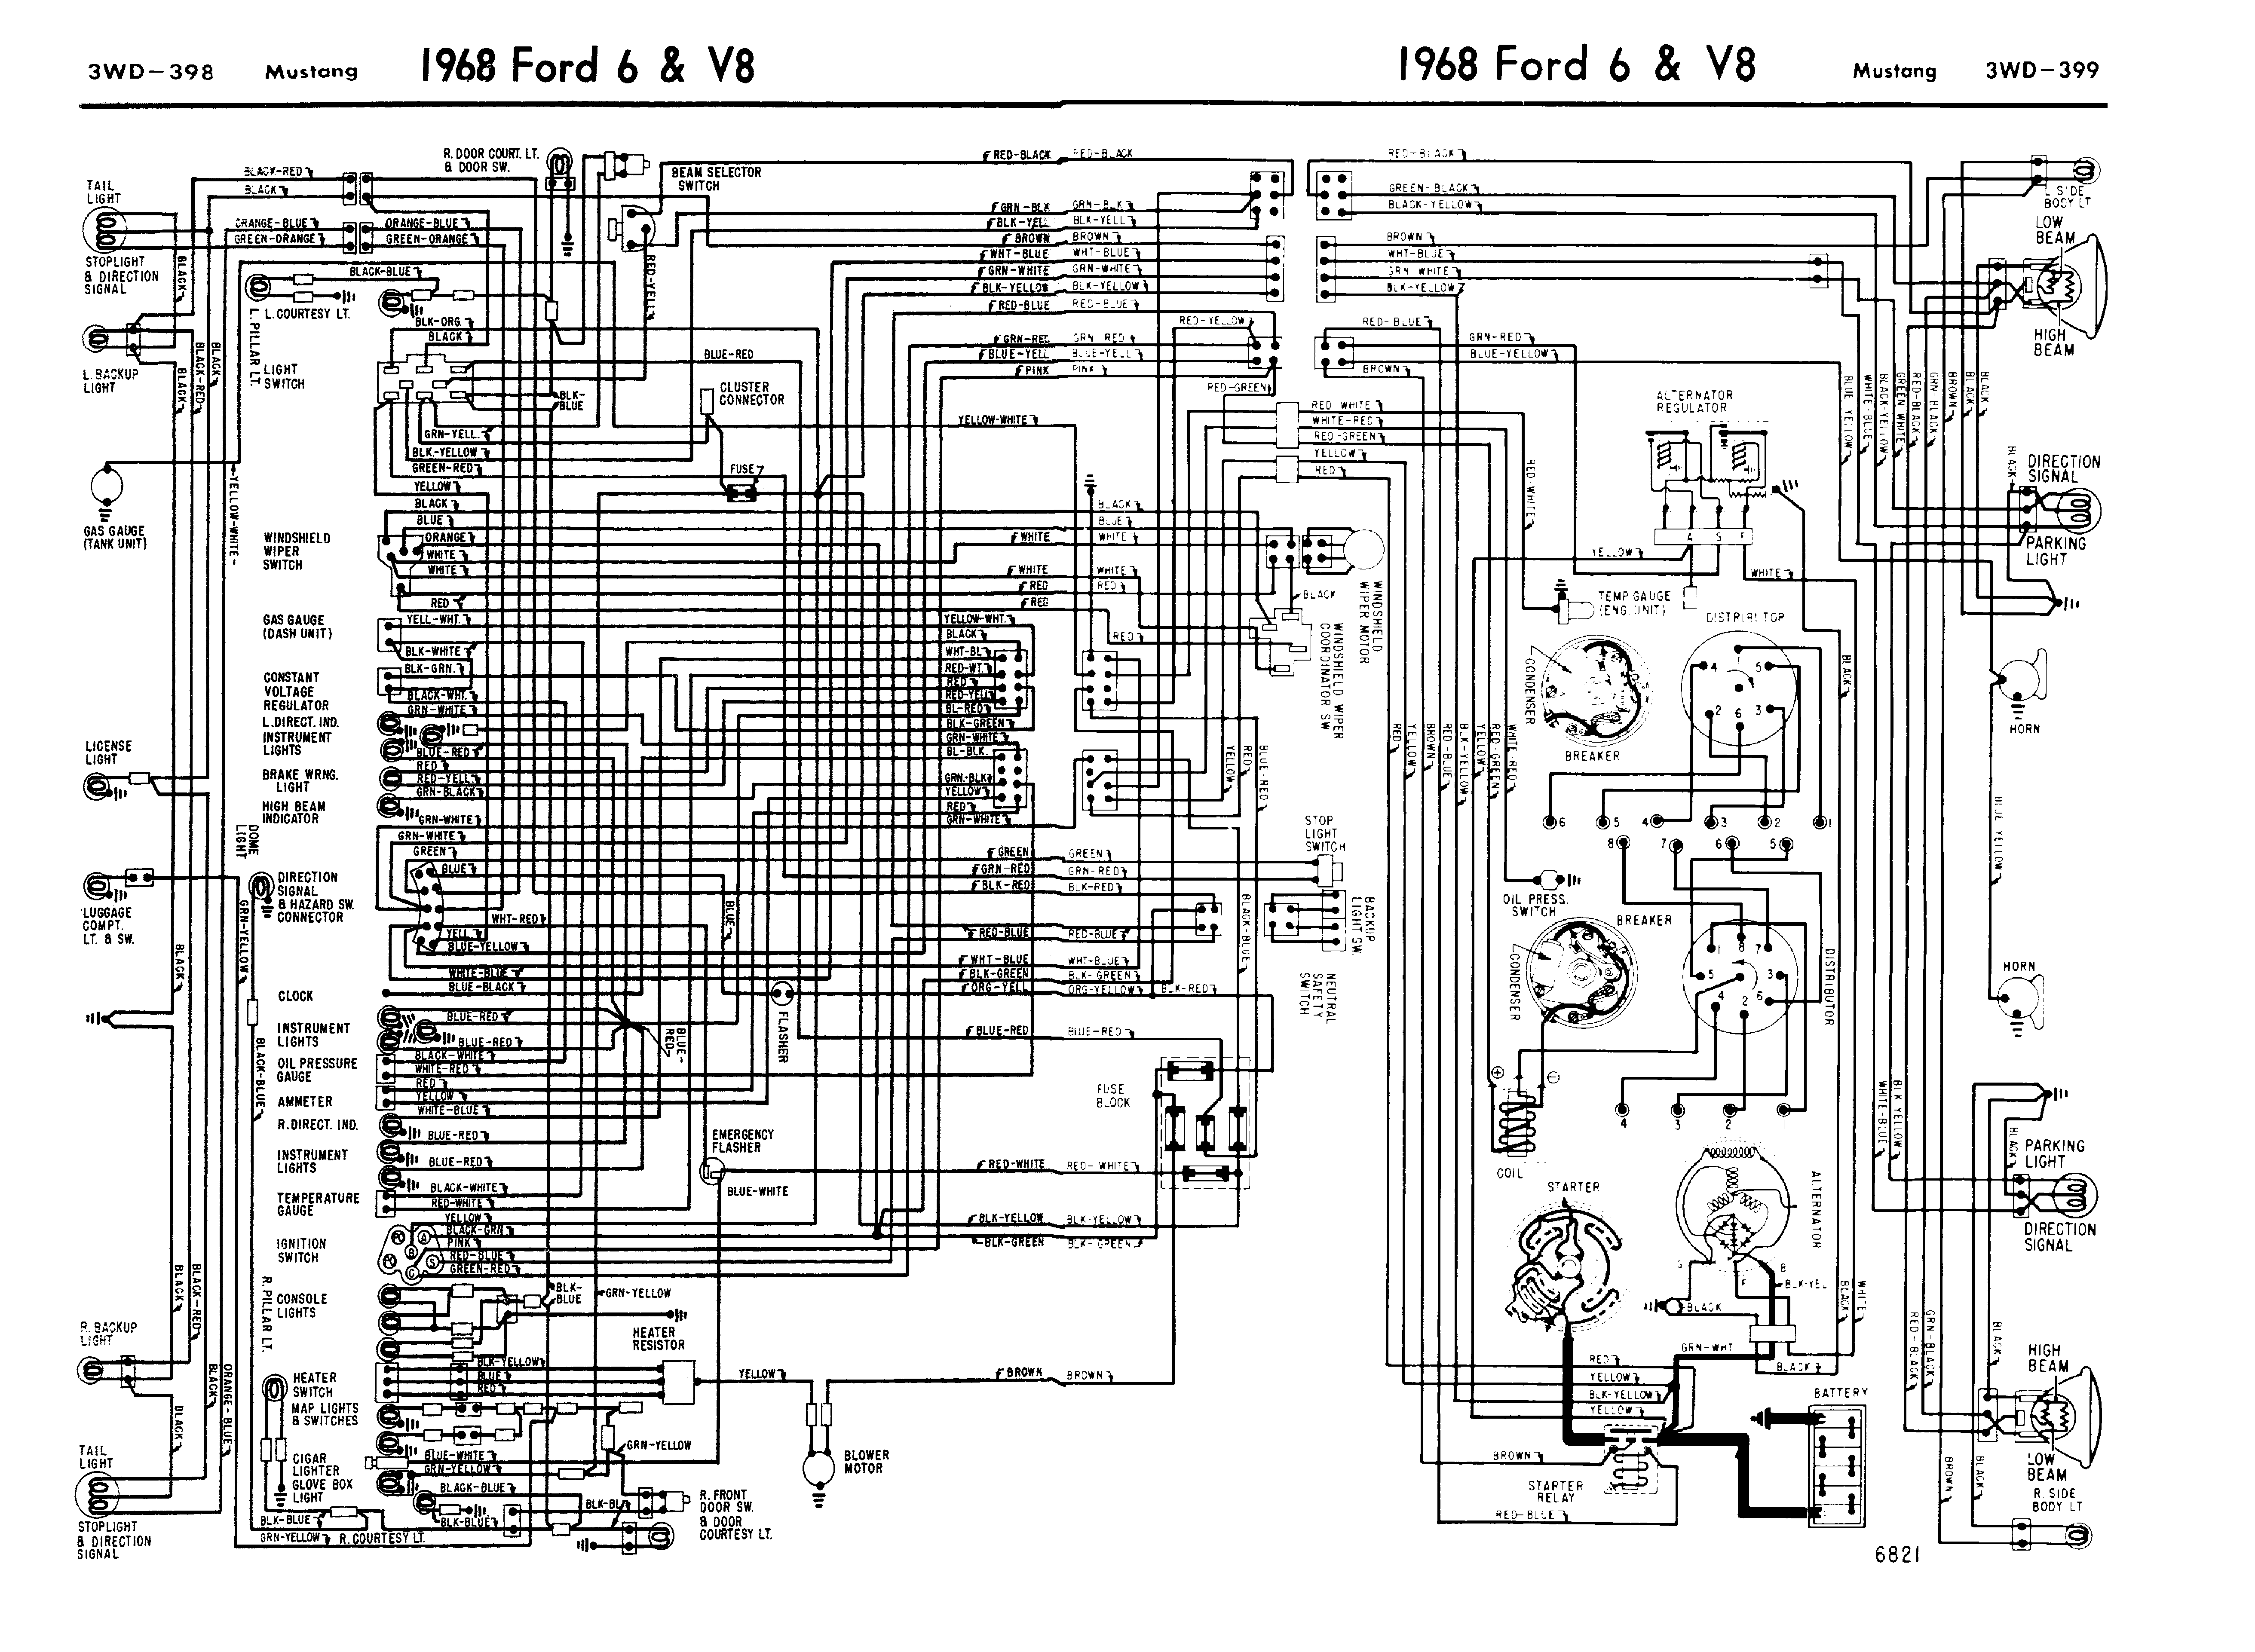 wiring harness for 1968 ford mustang free download wiring diagrams konsult [ 5246 x 3844 Pixel ]